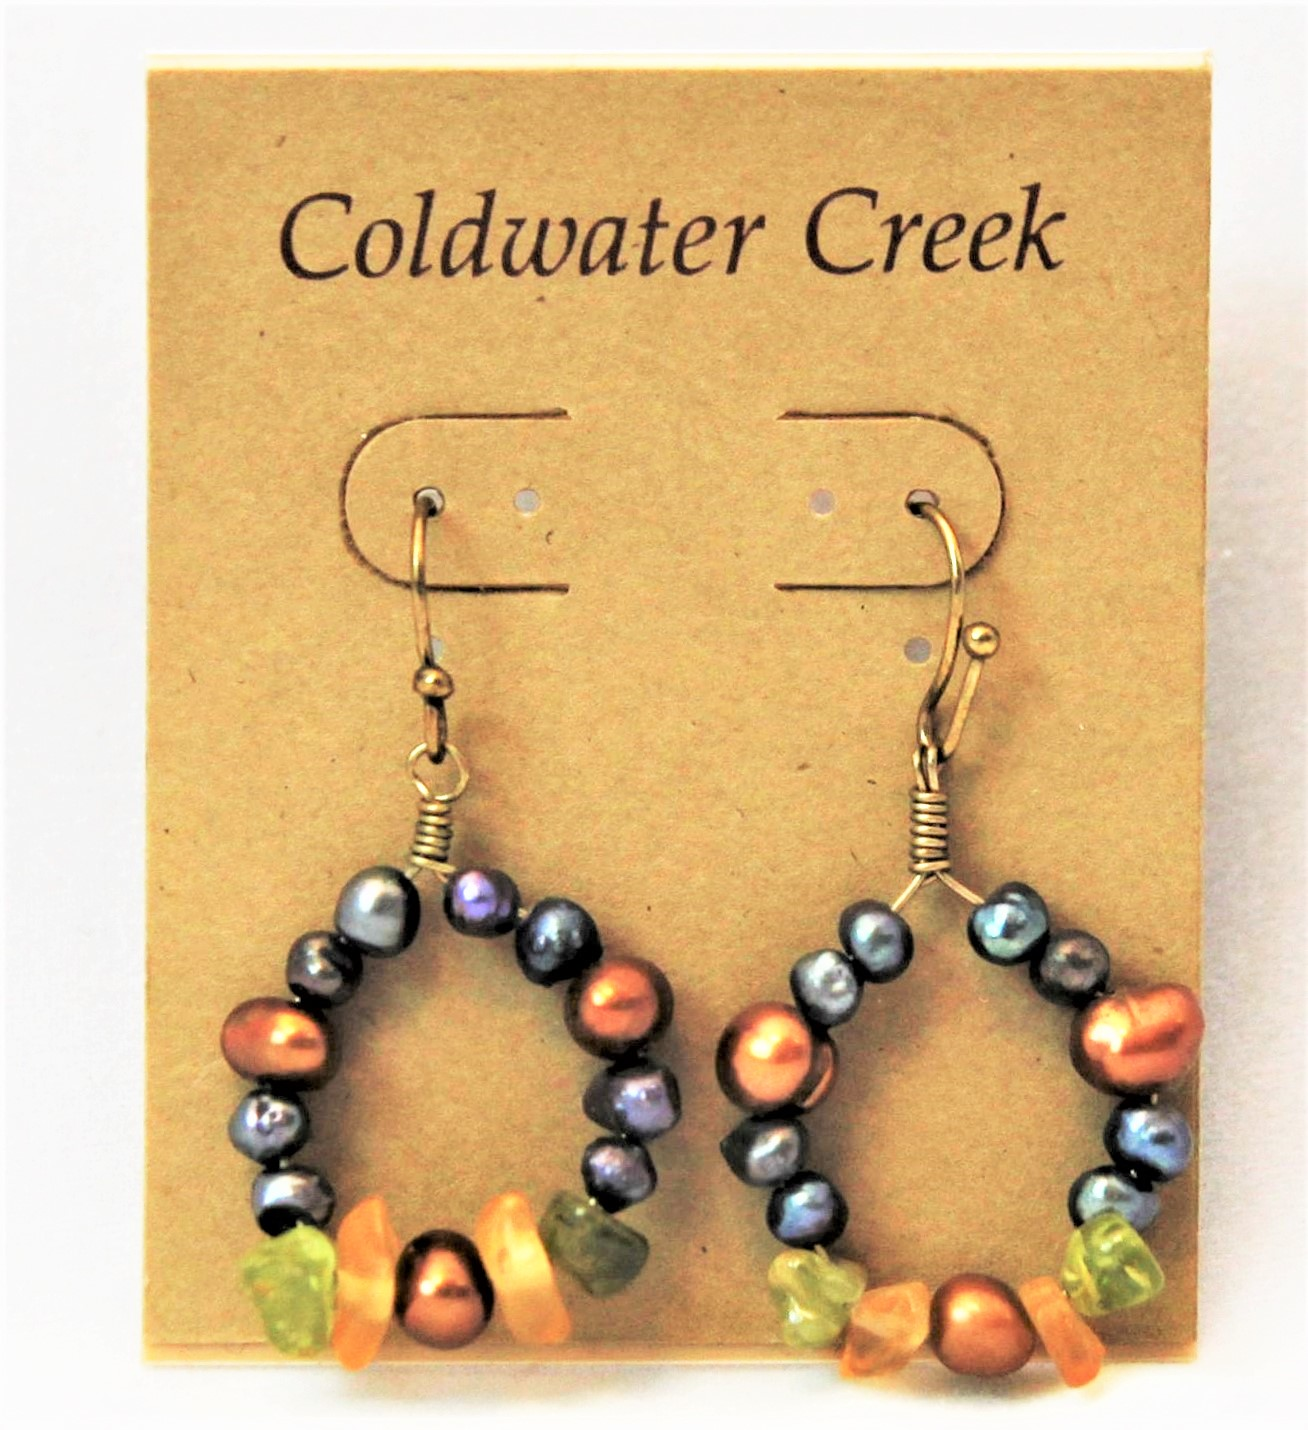 Coldwater Creek Earrings Of Plated Beads And Stones About 7 8 Across